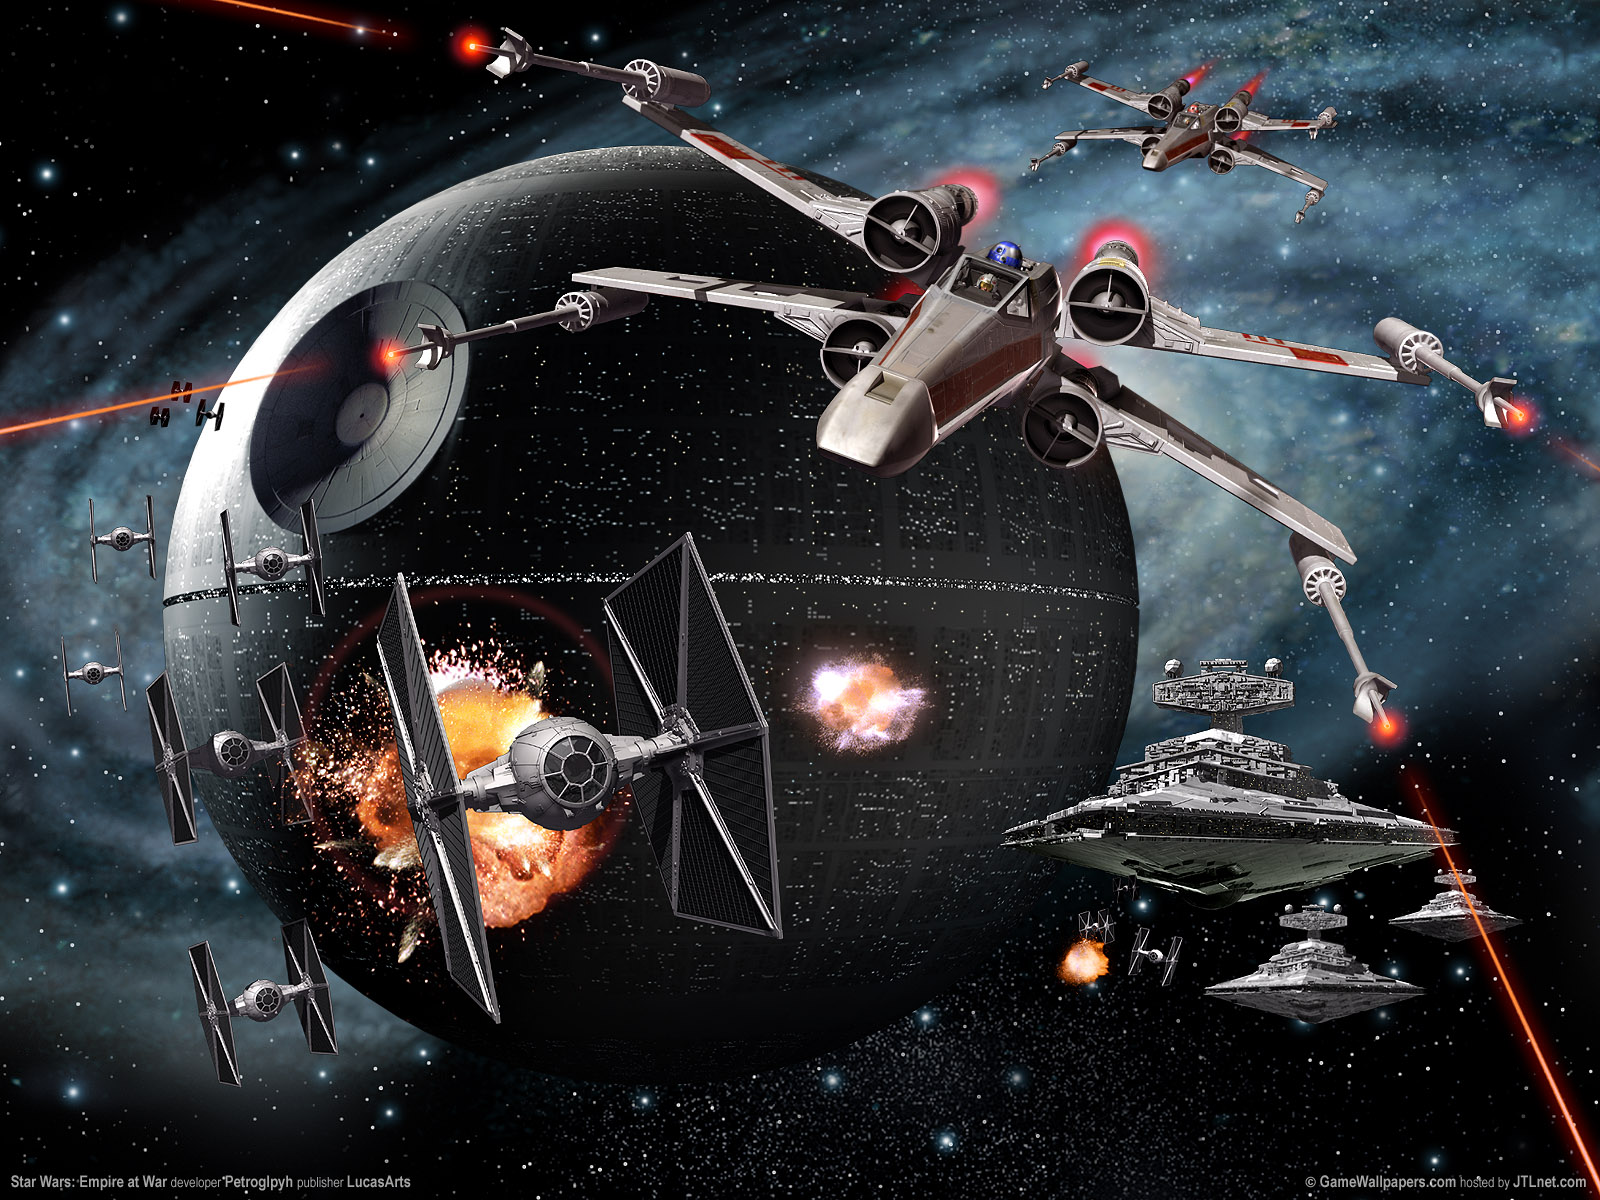 1600x1200 Star Wars Empire at War desktop PC and Mac 1600x1200